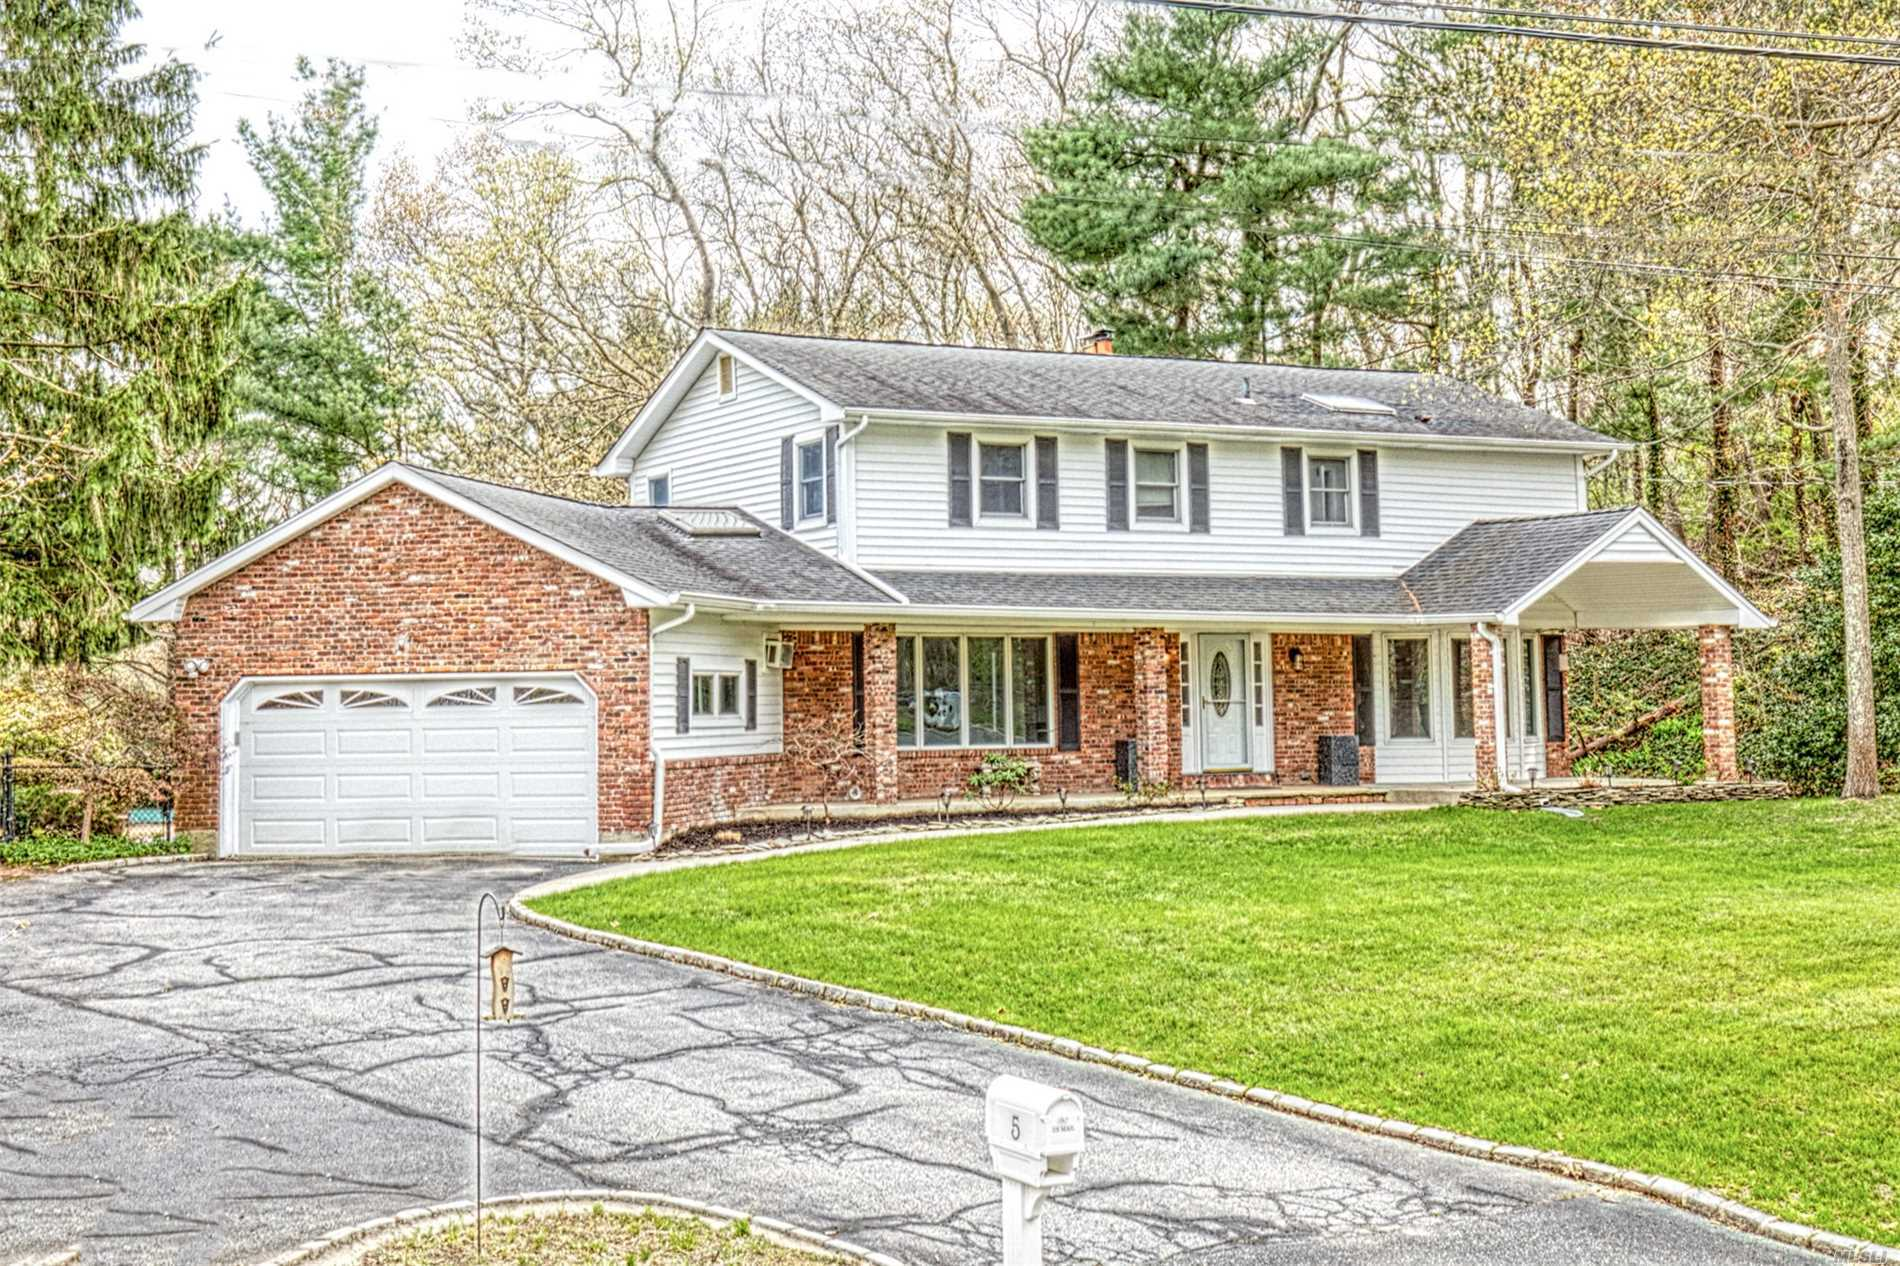 This beautiful Colonial is located in the heart of Dix Hills in the renowned Half Hollows SD. It features a large open & private backyard that can be viewed from many of the tremendous Anderson windows throughout the home which let in plenty of natural lighting. This is a must see & will not last. Seller is very motivated